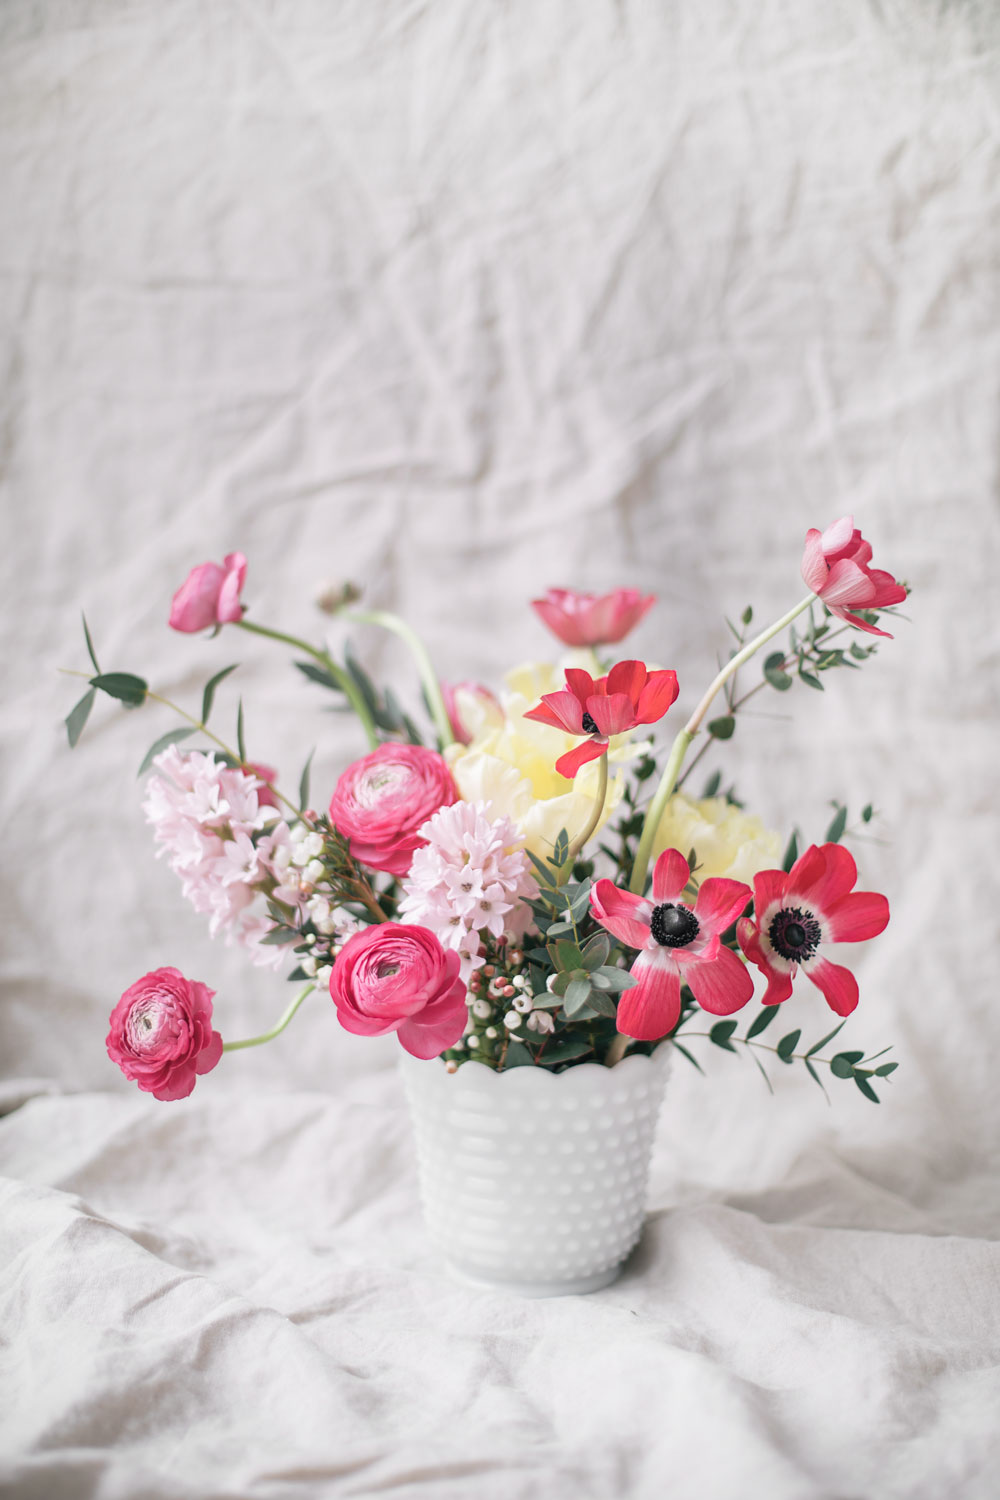 5 flowers to give for valentine 39 s day that aren 39 t roses for Valentines day flower ideas